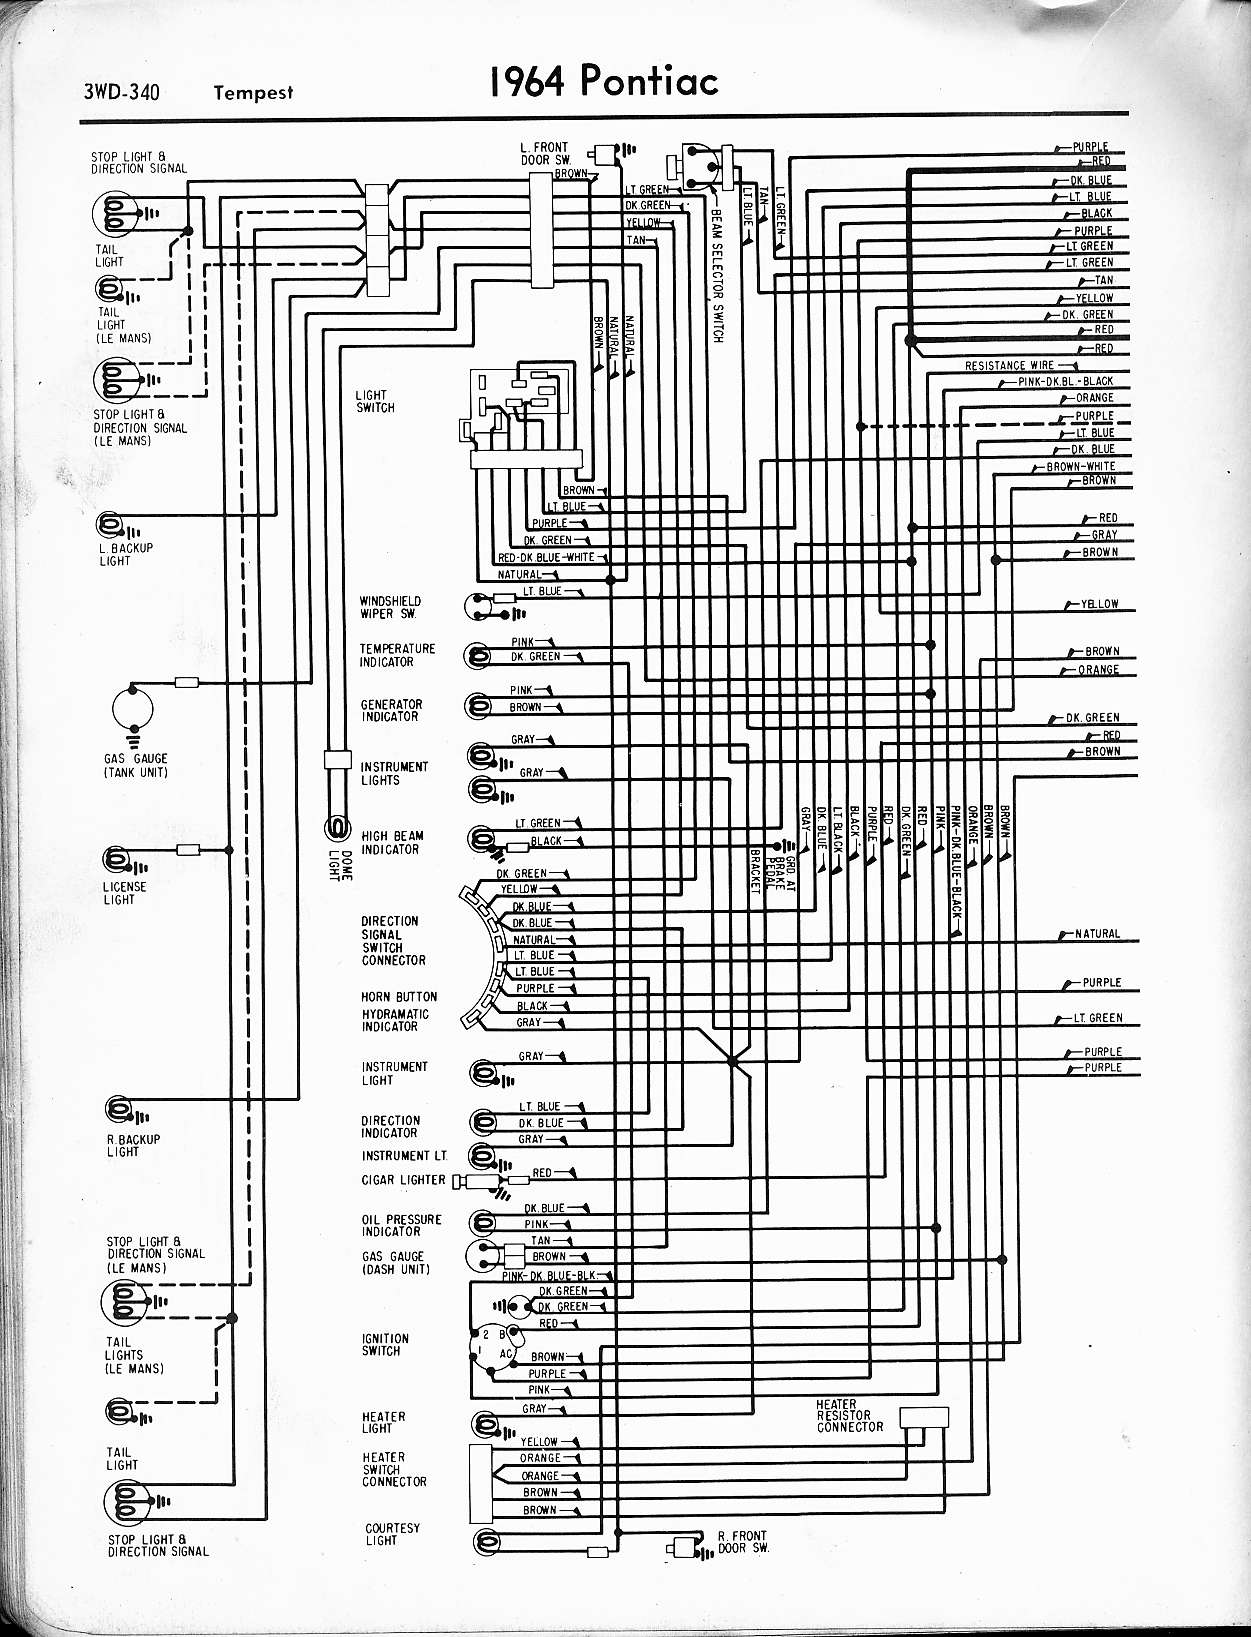 1969 Pontiac Gto Ignition Switch Wiring Diagram Diagrams Firebird Engine Schematic Wallace Racing Rh Wallaceracing Com 1964